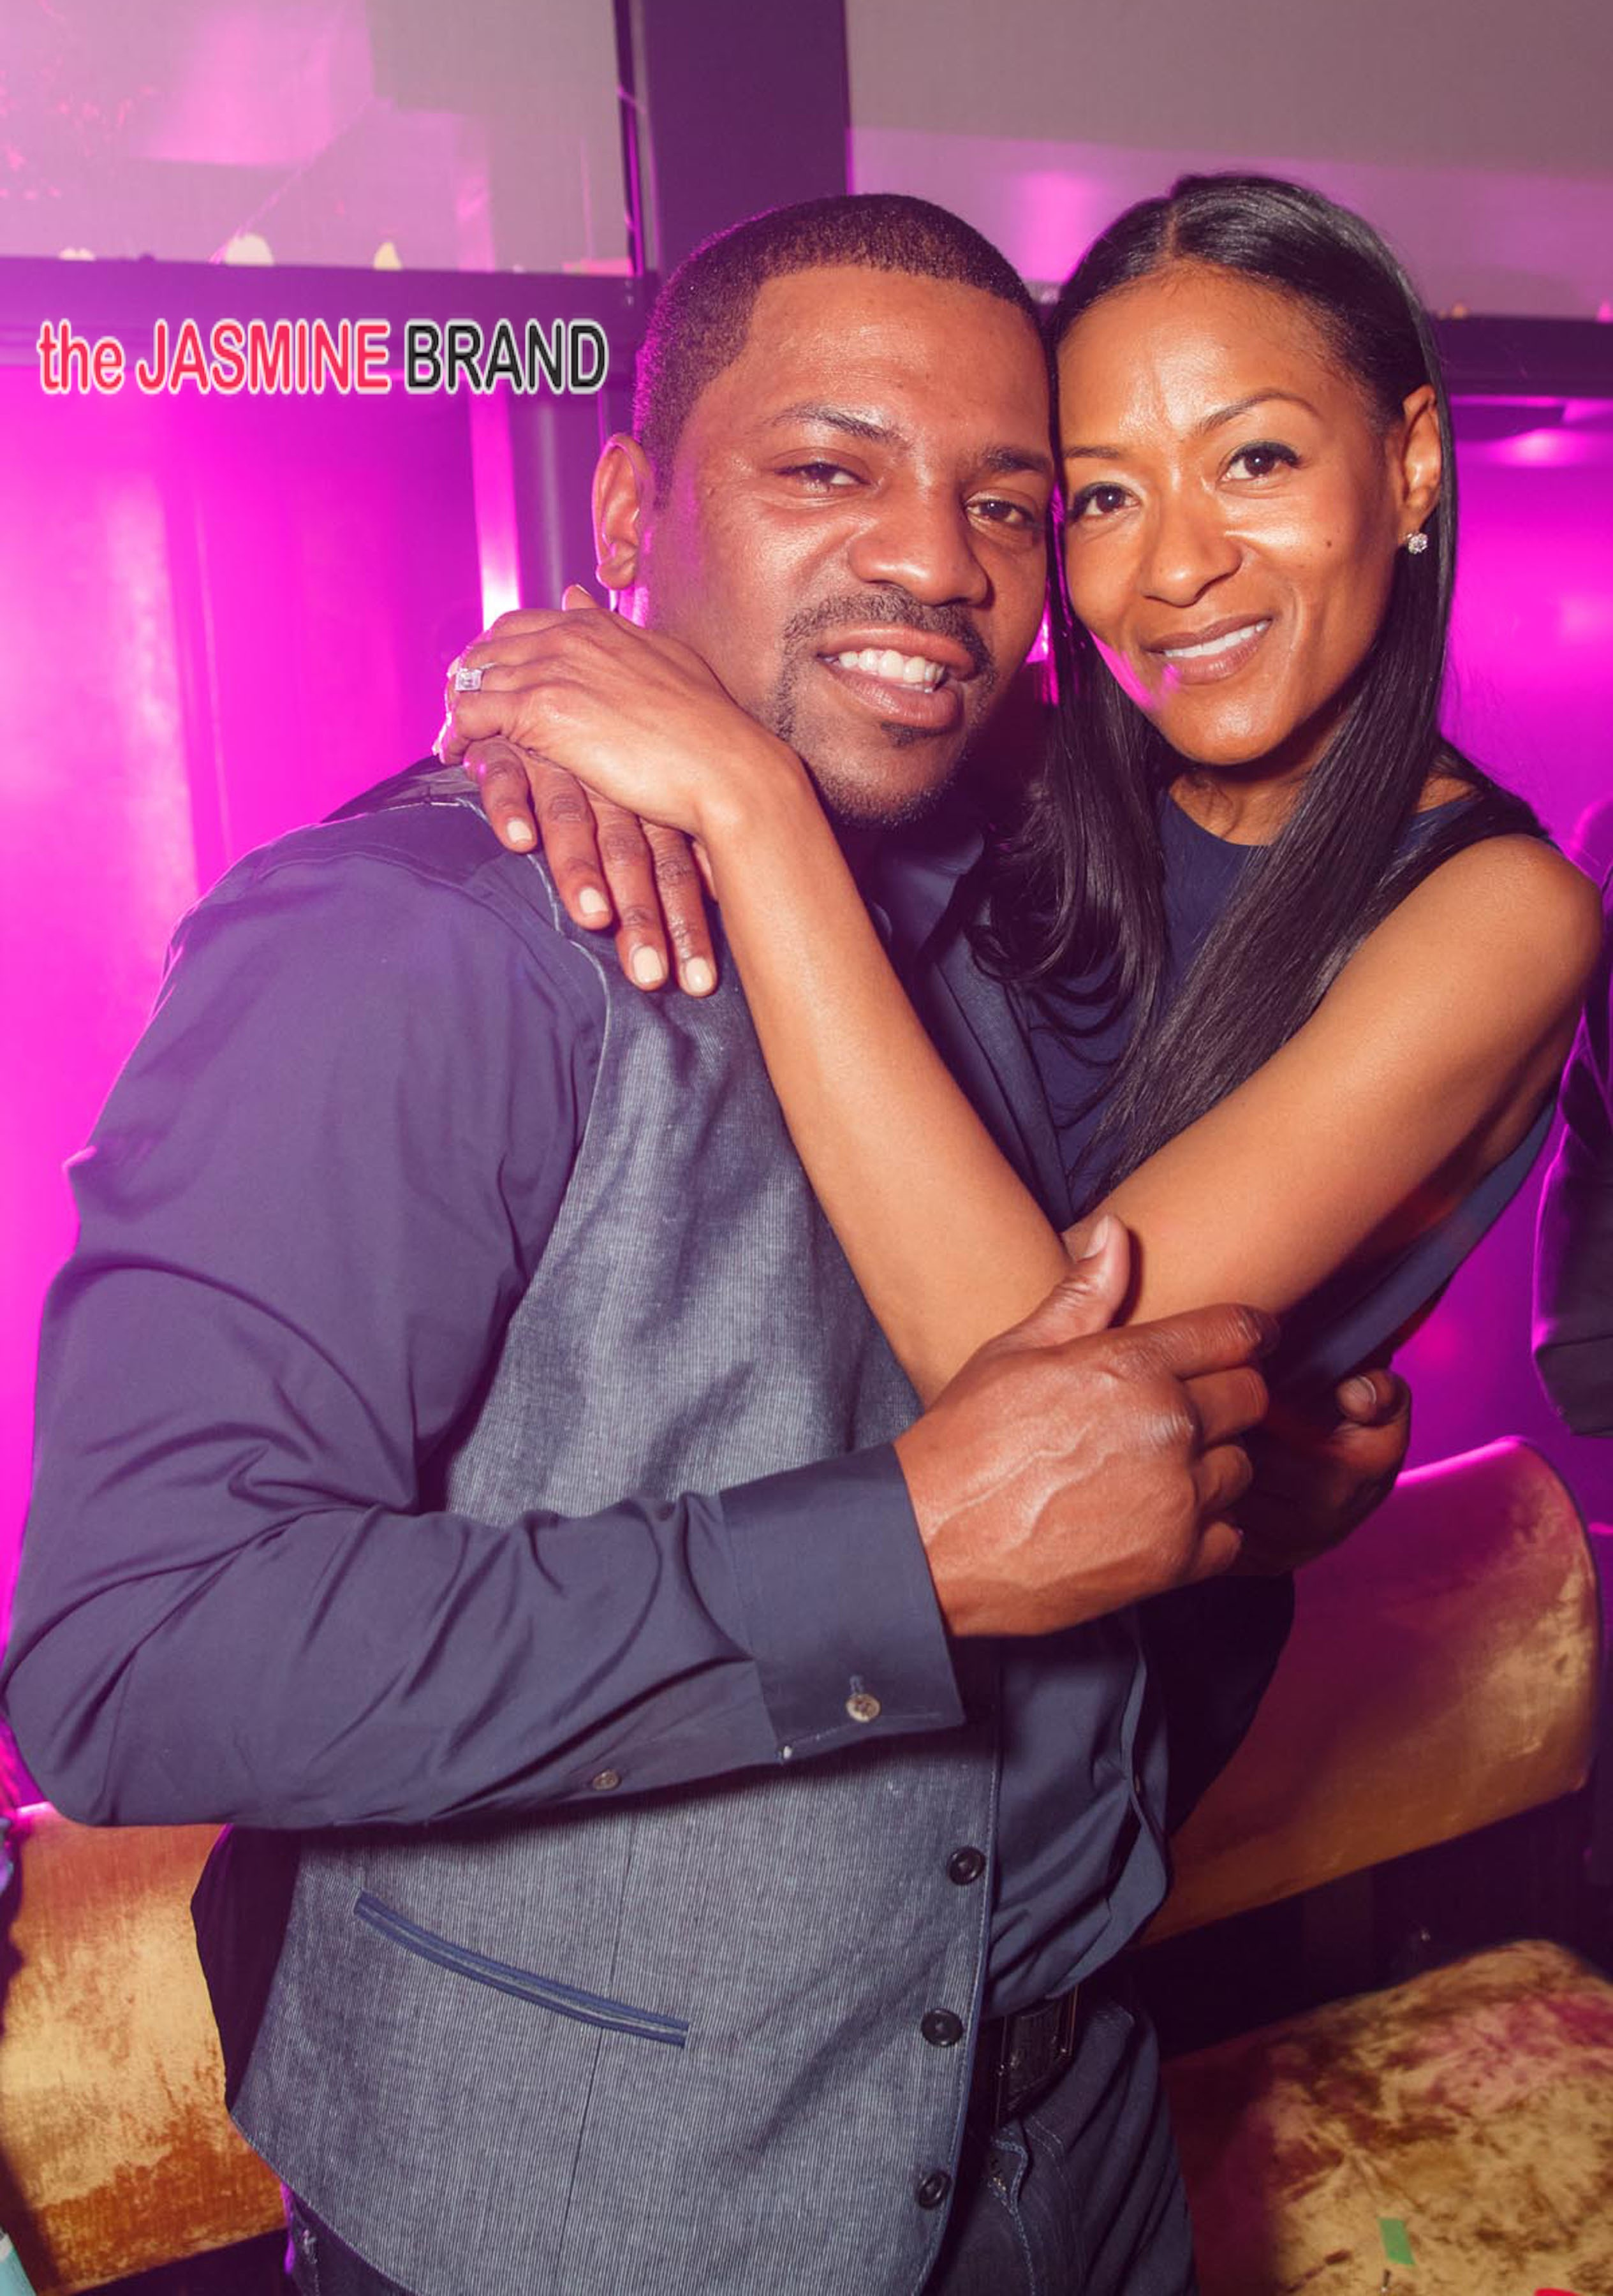 Mekhi Phifer and wife Reshelet celebrate a family birthday at HAZE nightclub at the ARIA resort in Las Vegas